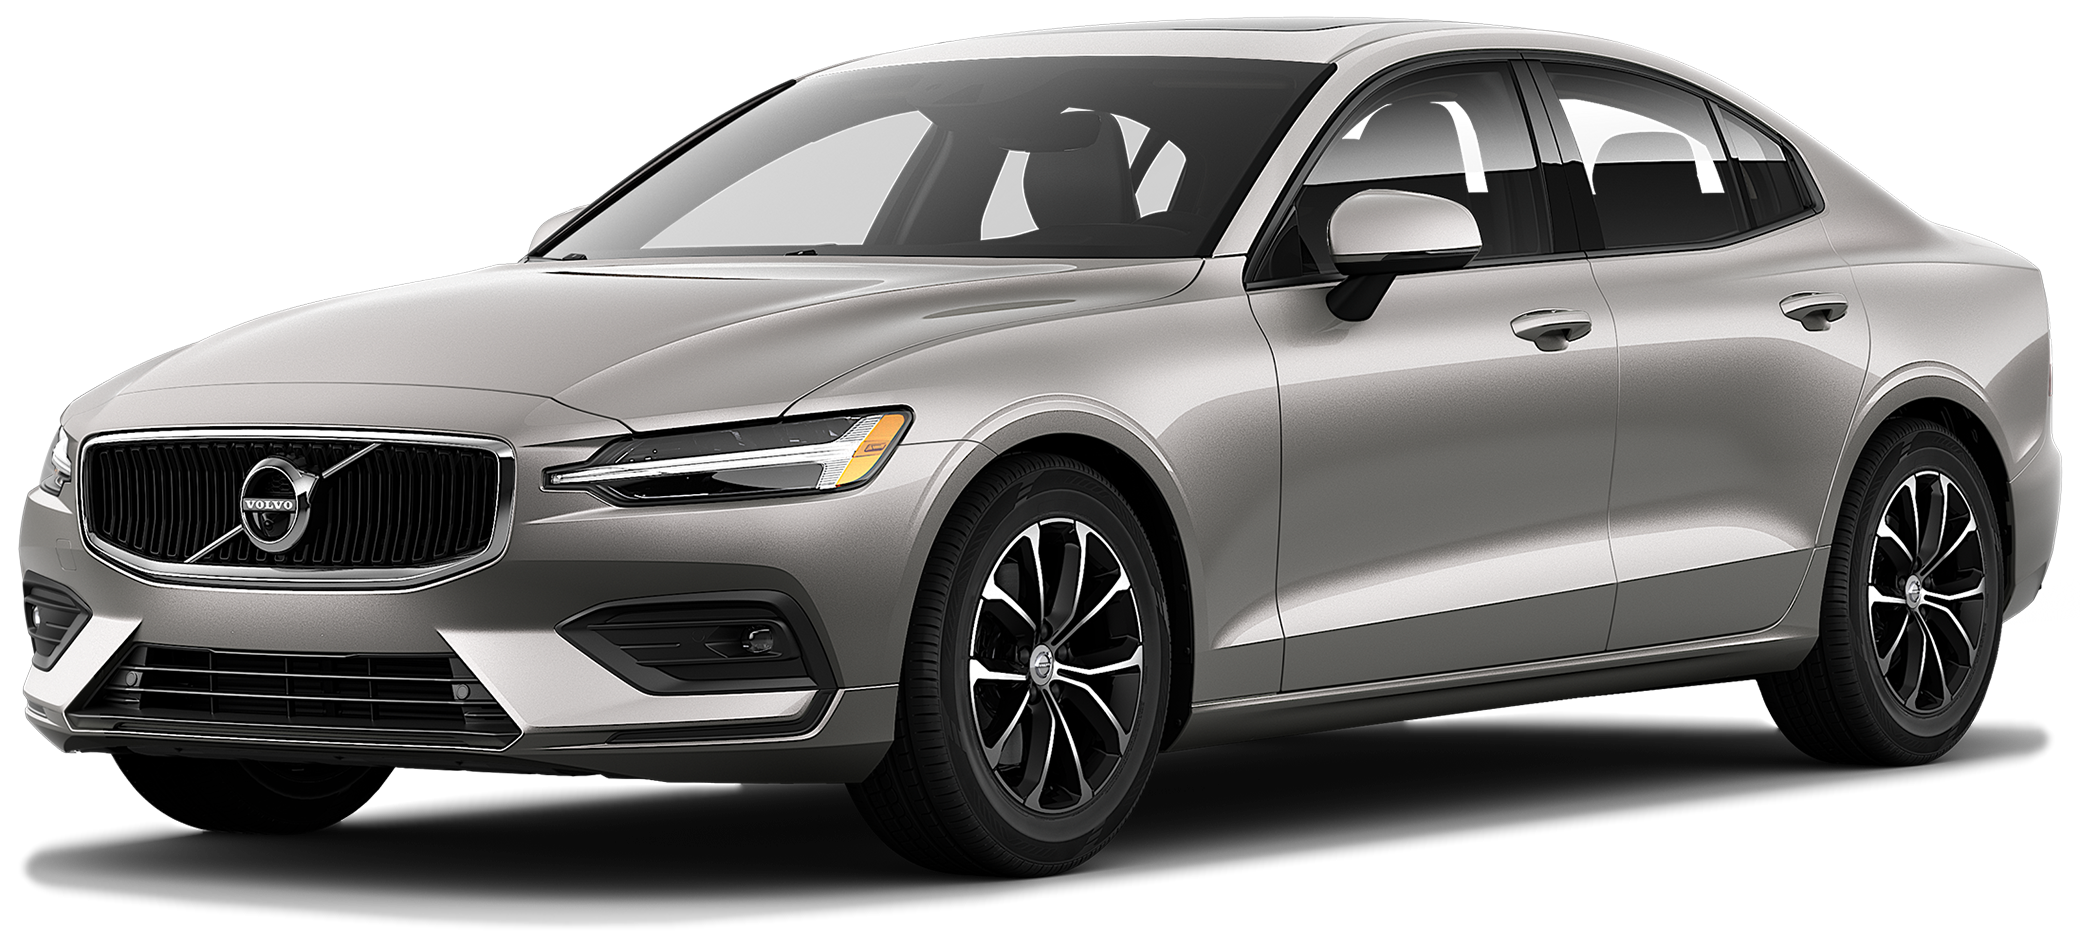 Volvo S60 Sedan Lease Image